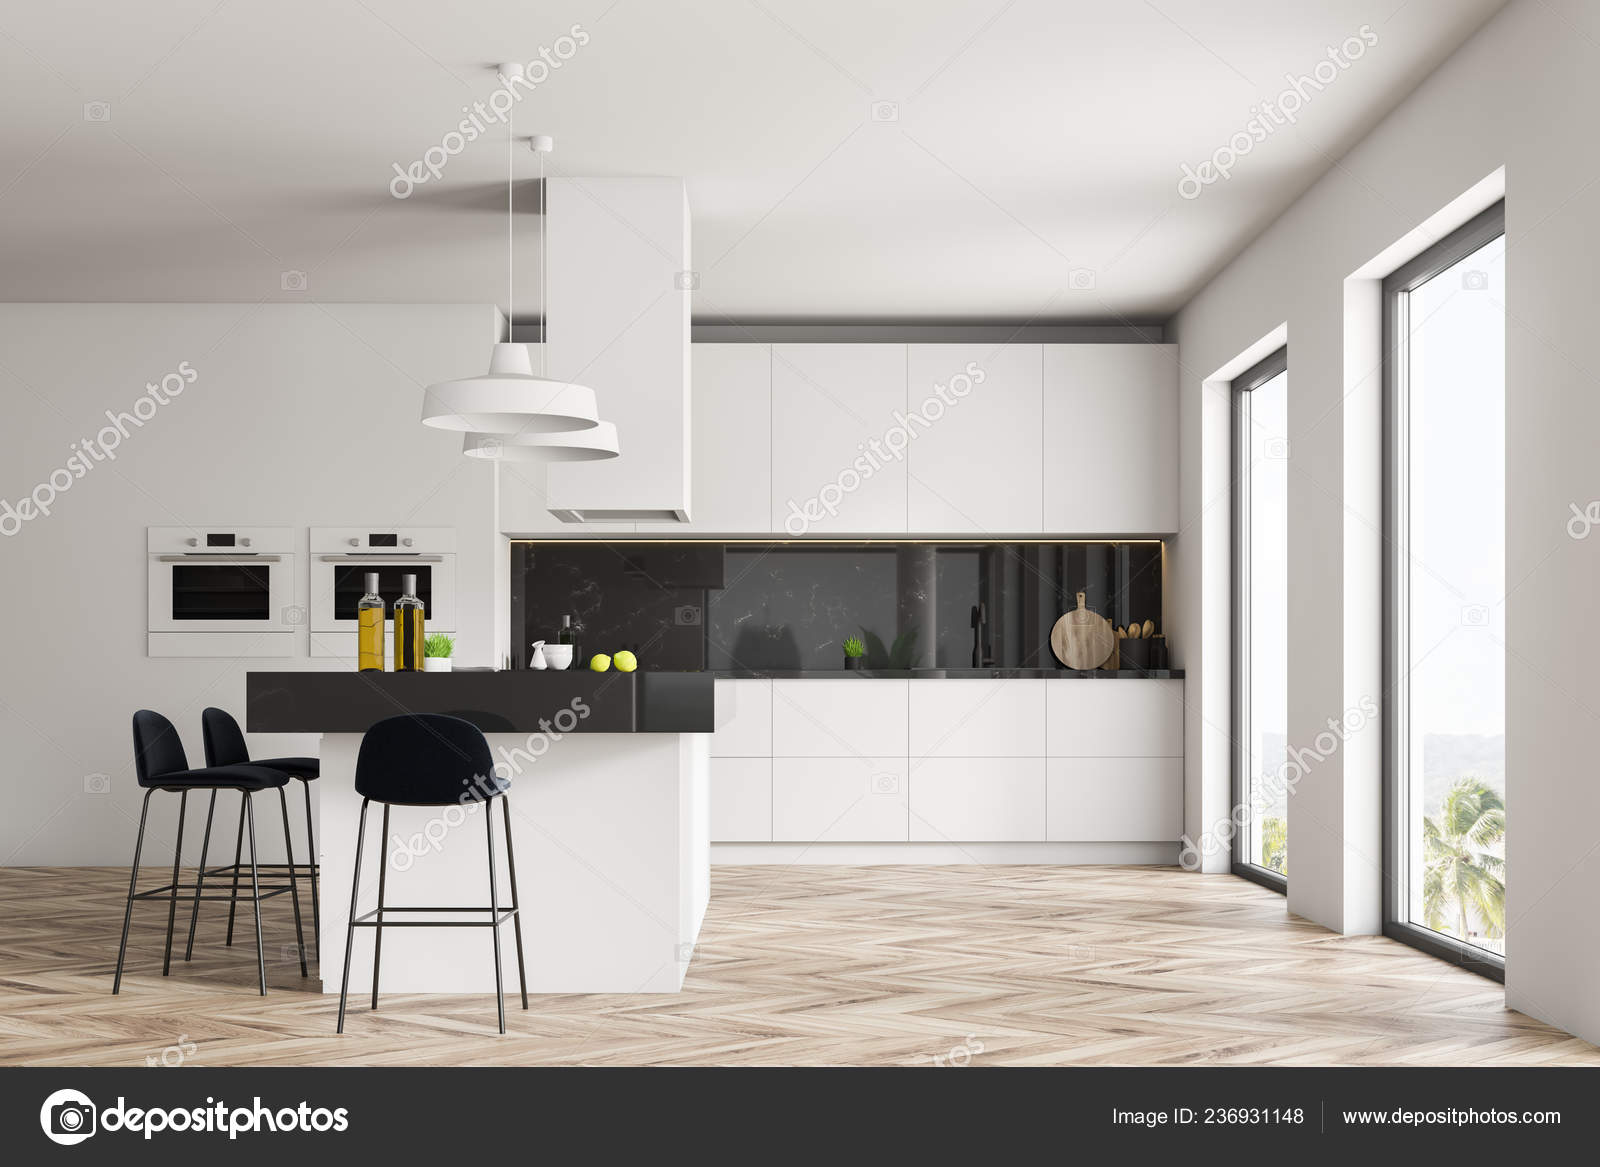 Interior Kitchen White Black Marble Walls Wooden Floor White Countertops Stock Photo C Denisismagilov 236931148,United Checked Baggage Fees